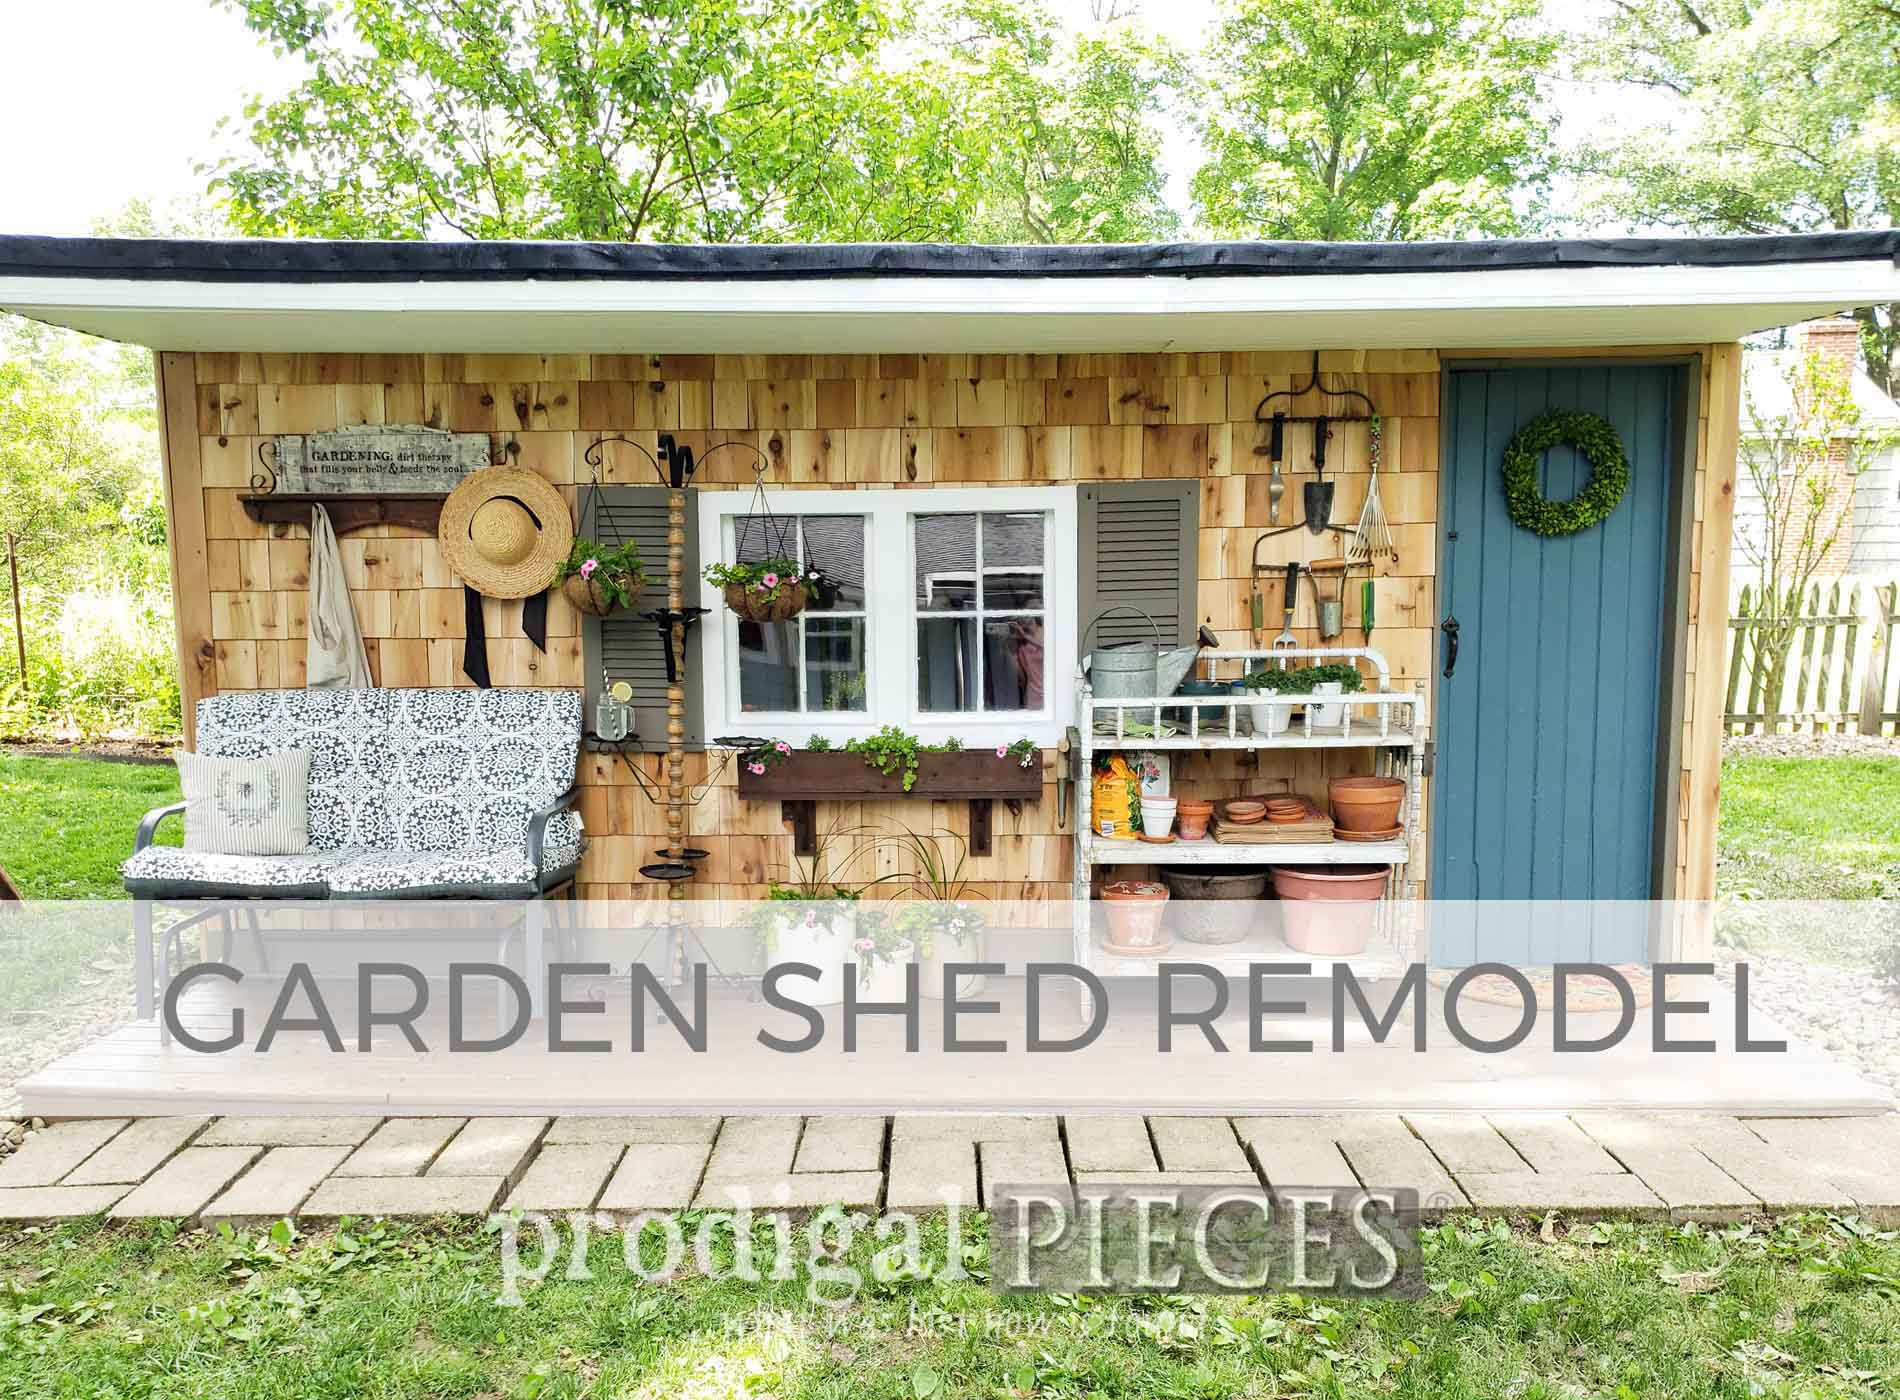 Gorgeous shabby to dreamy garden shed remodel by Prodigal Pieces | prodigalpieces.com